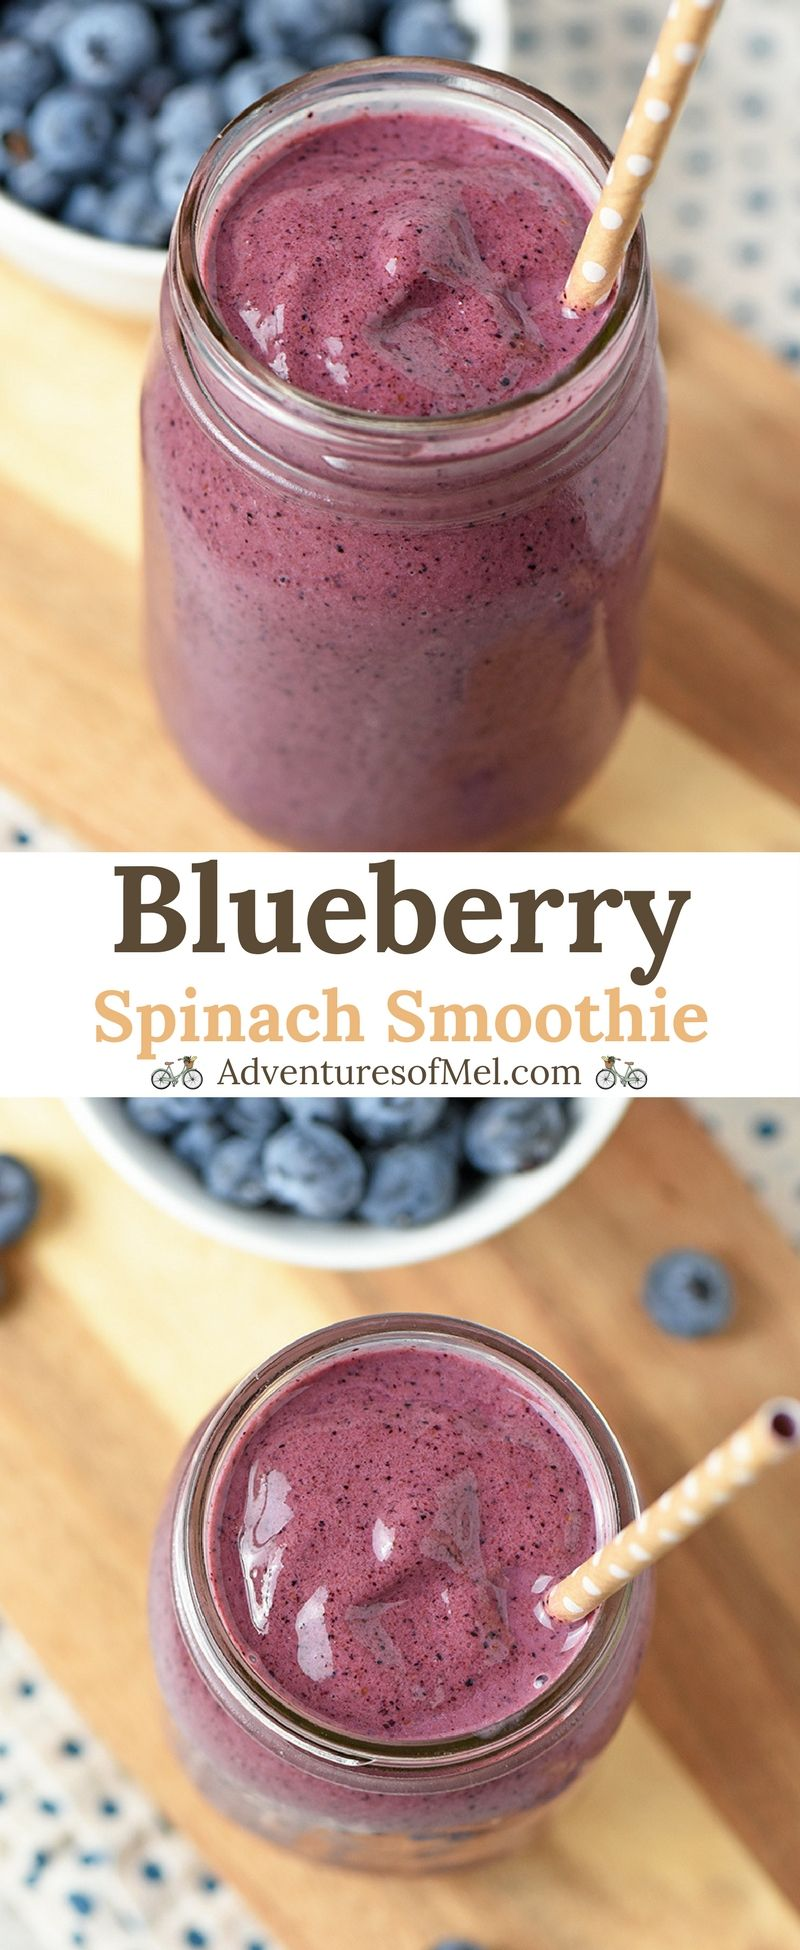 Blueberry Spinach Smoothie recipe that\'s healthy, quick, and an easy to make snack. Made with fresh spinach, plain Greek yogurt, and honey, also a tasty addition to mornings. #blueberry #smoothies #blueberries #spinach #healthyrecipes #frozen #easyrecipe #snack